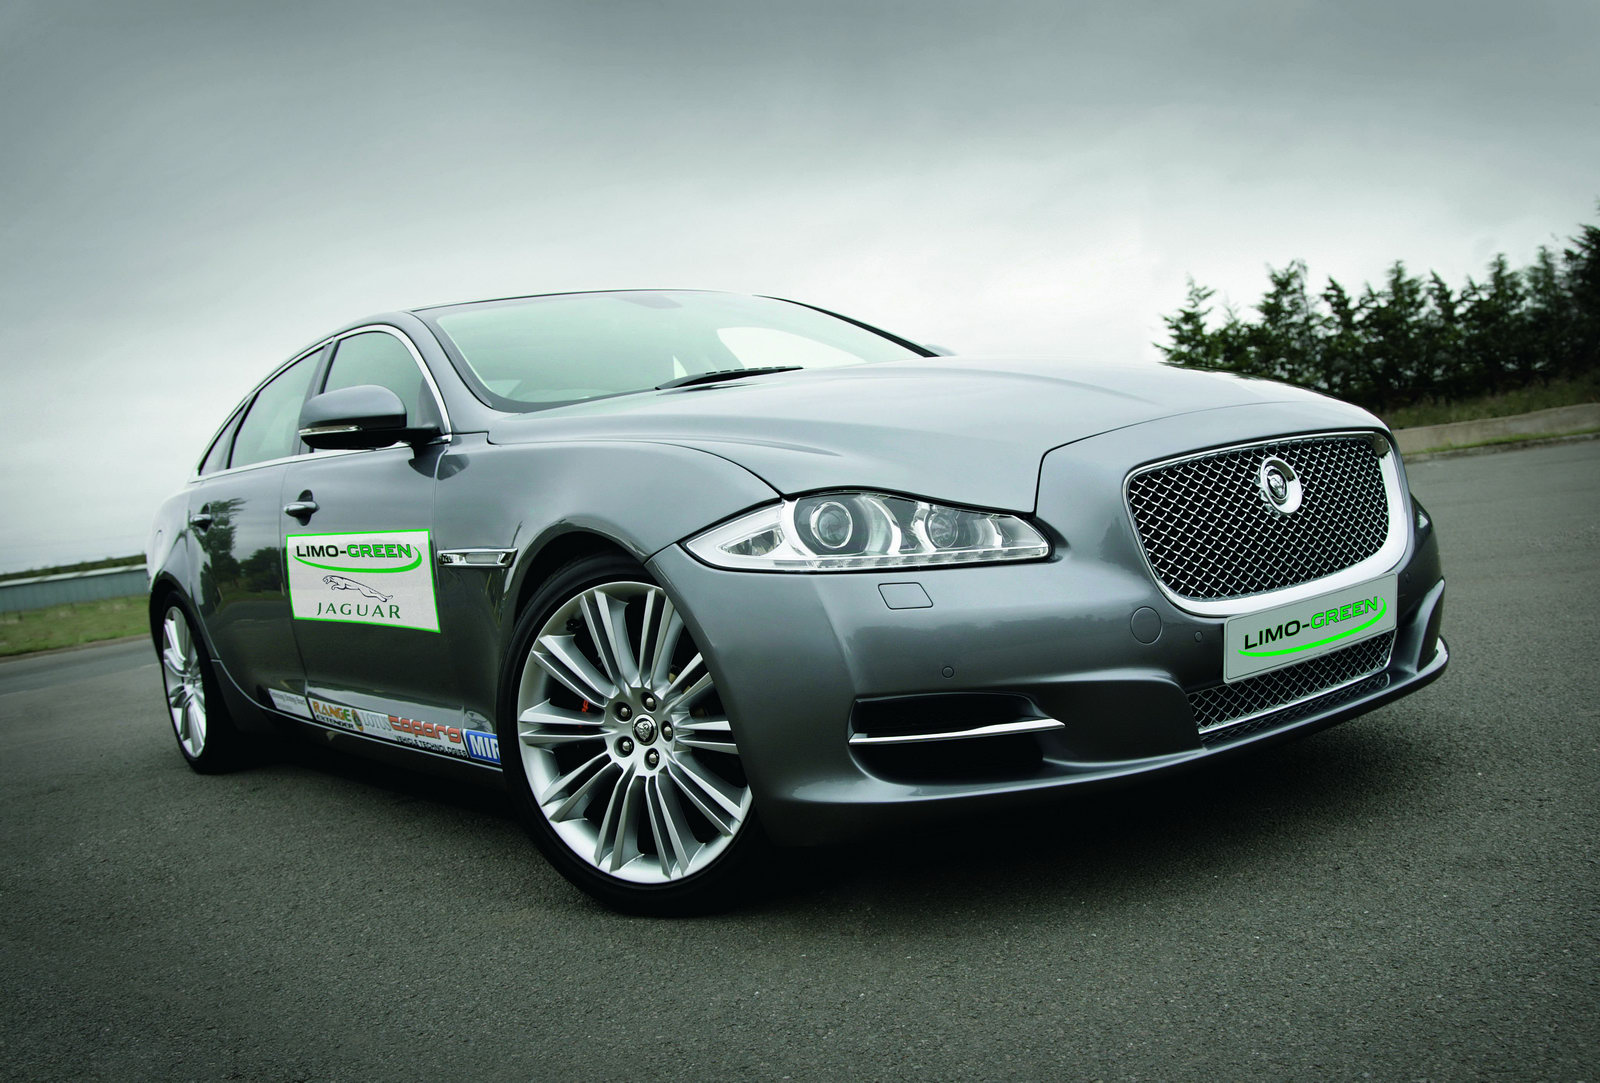 The Car Jaguar Xj Limo Green Hybrid Study With Range